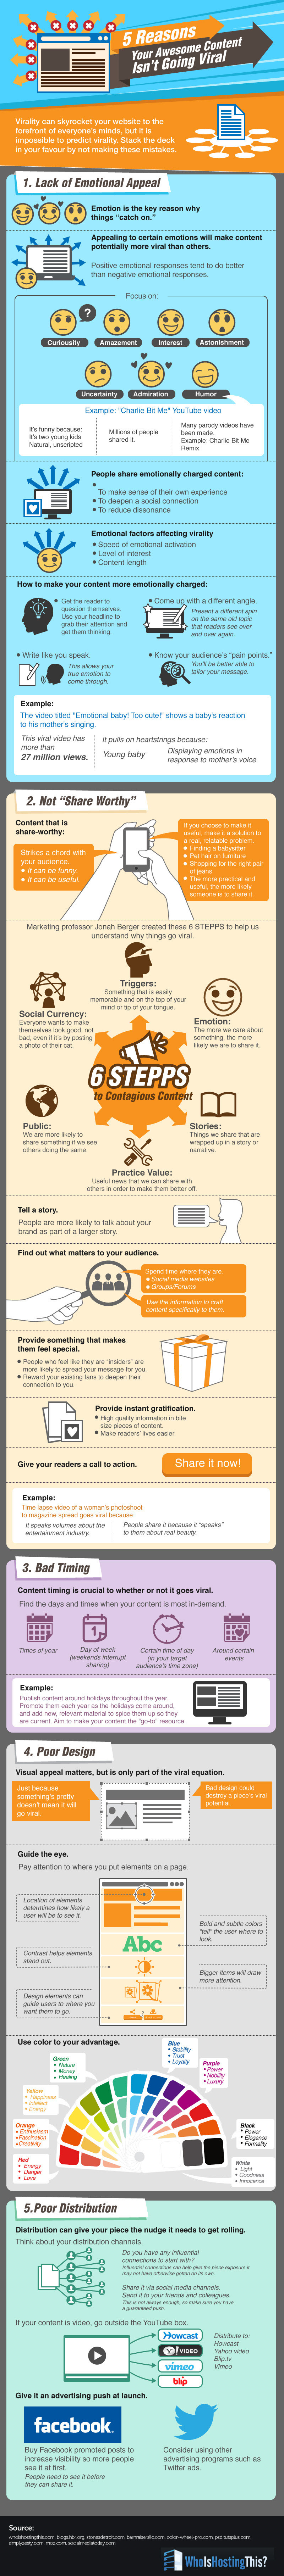 Why Your Awesome Content Isn't Going Viral - infographic